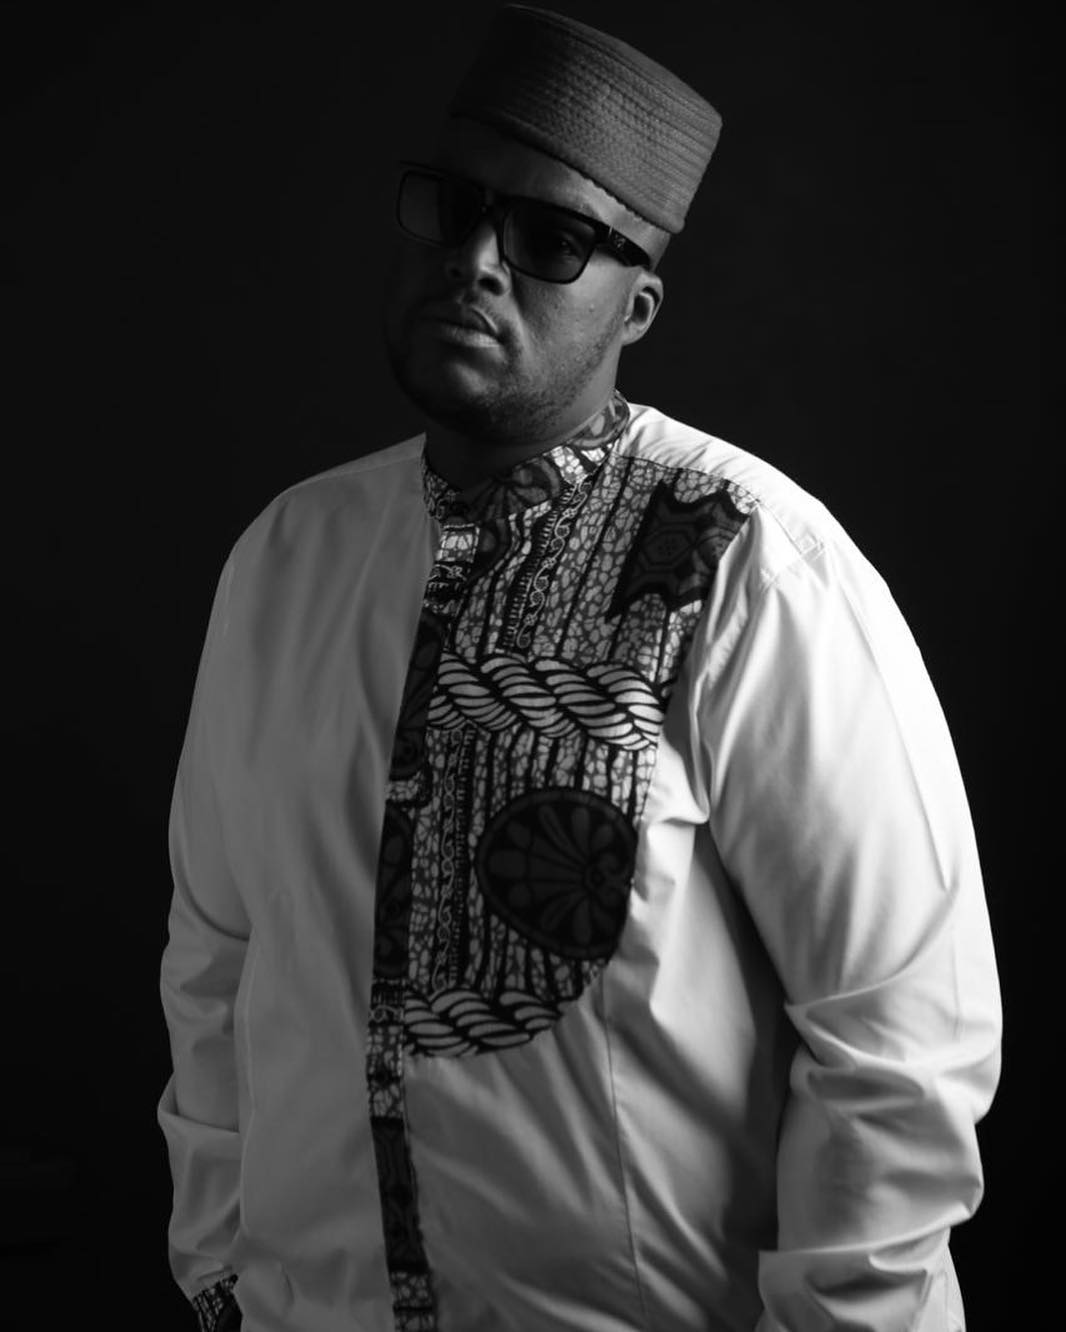 South Africa Mourns For The Loss Of Its Hip Hop Legend, HHP